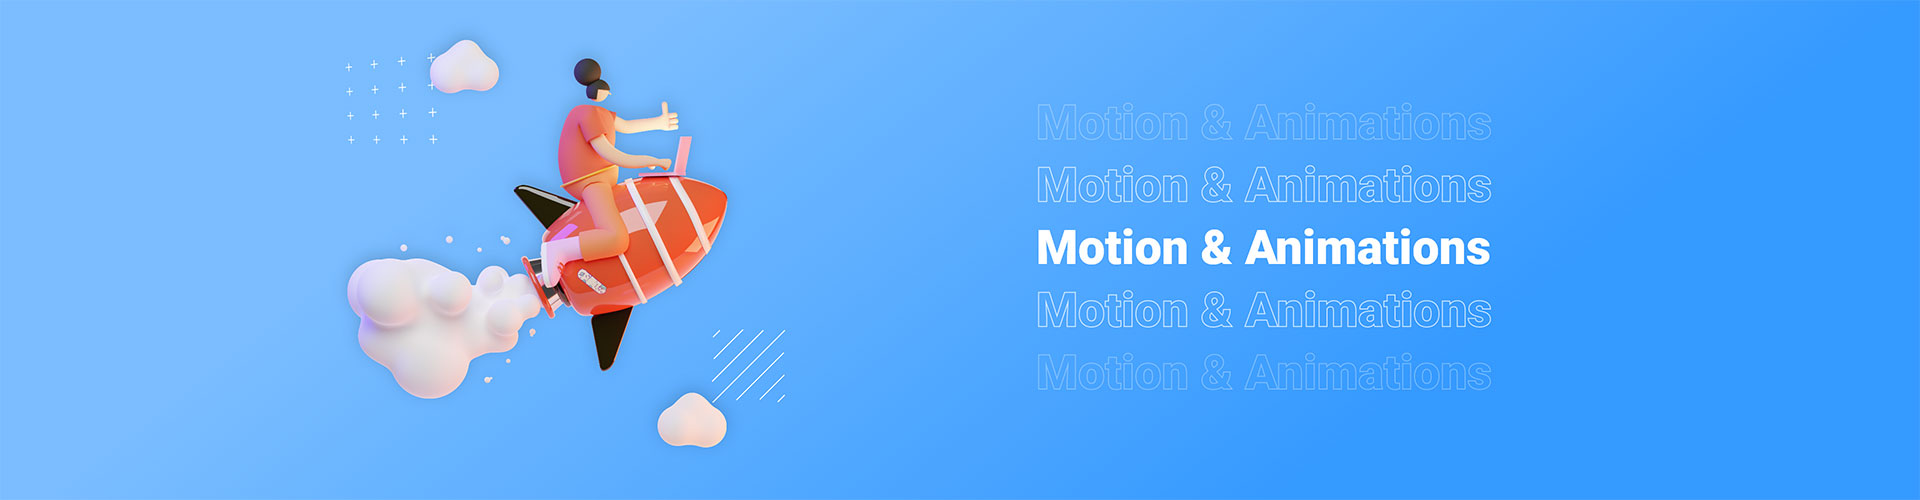 Video Motion & Animation Services